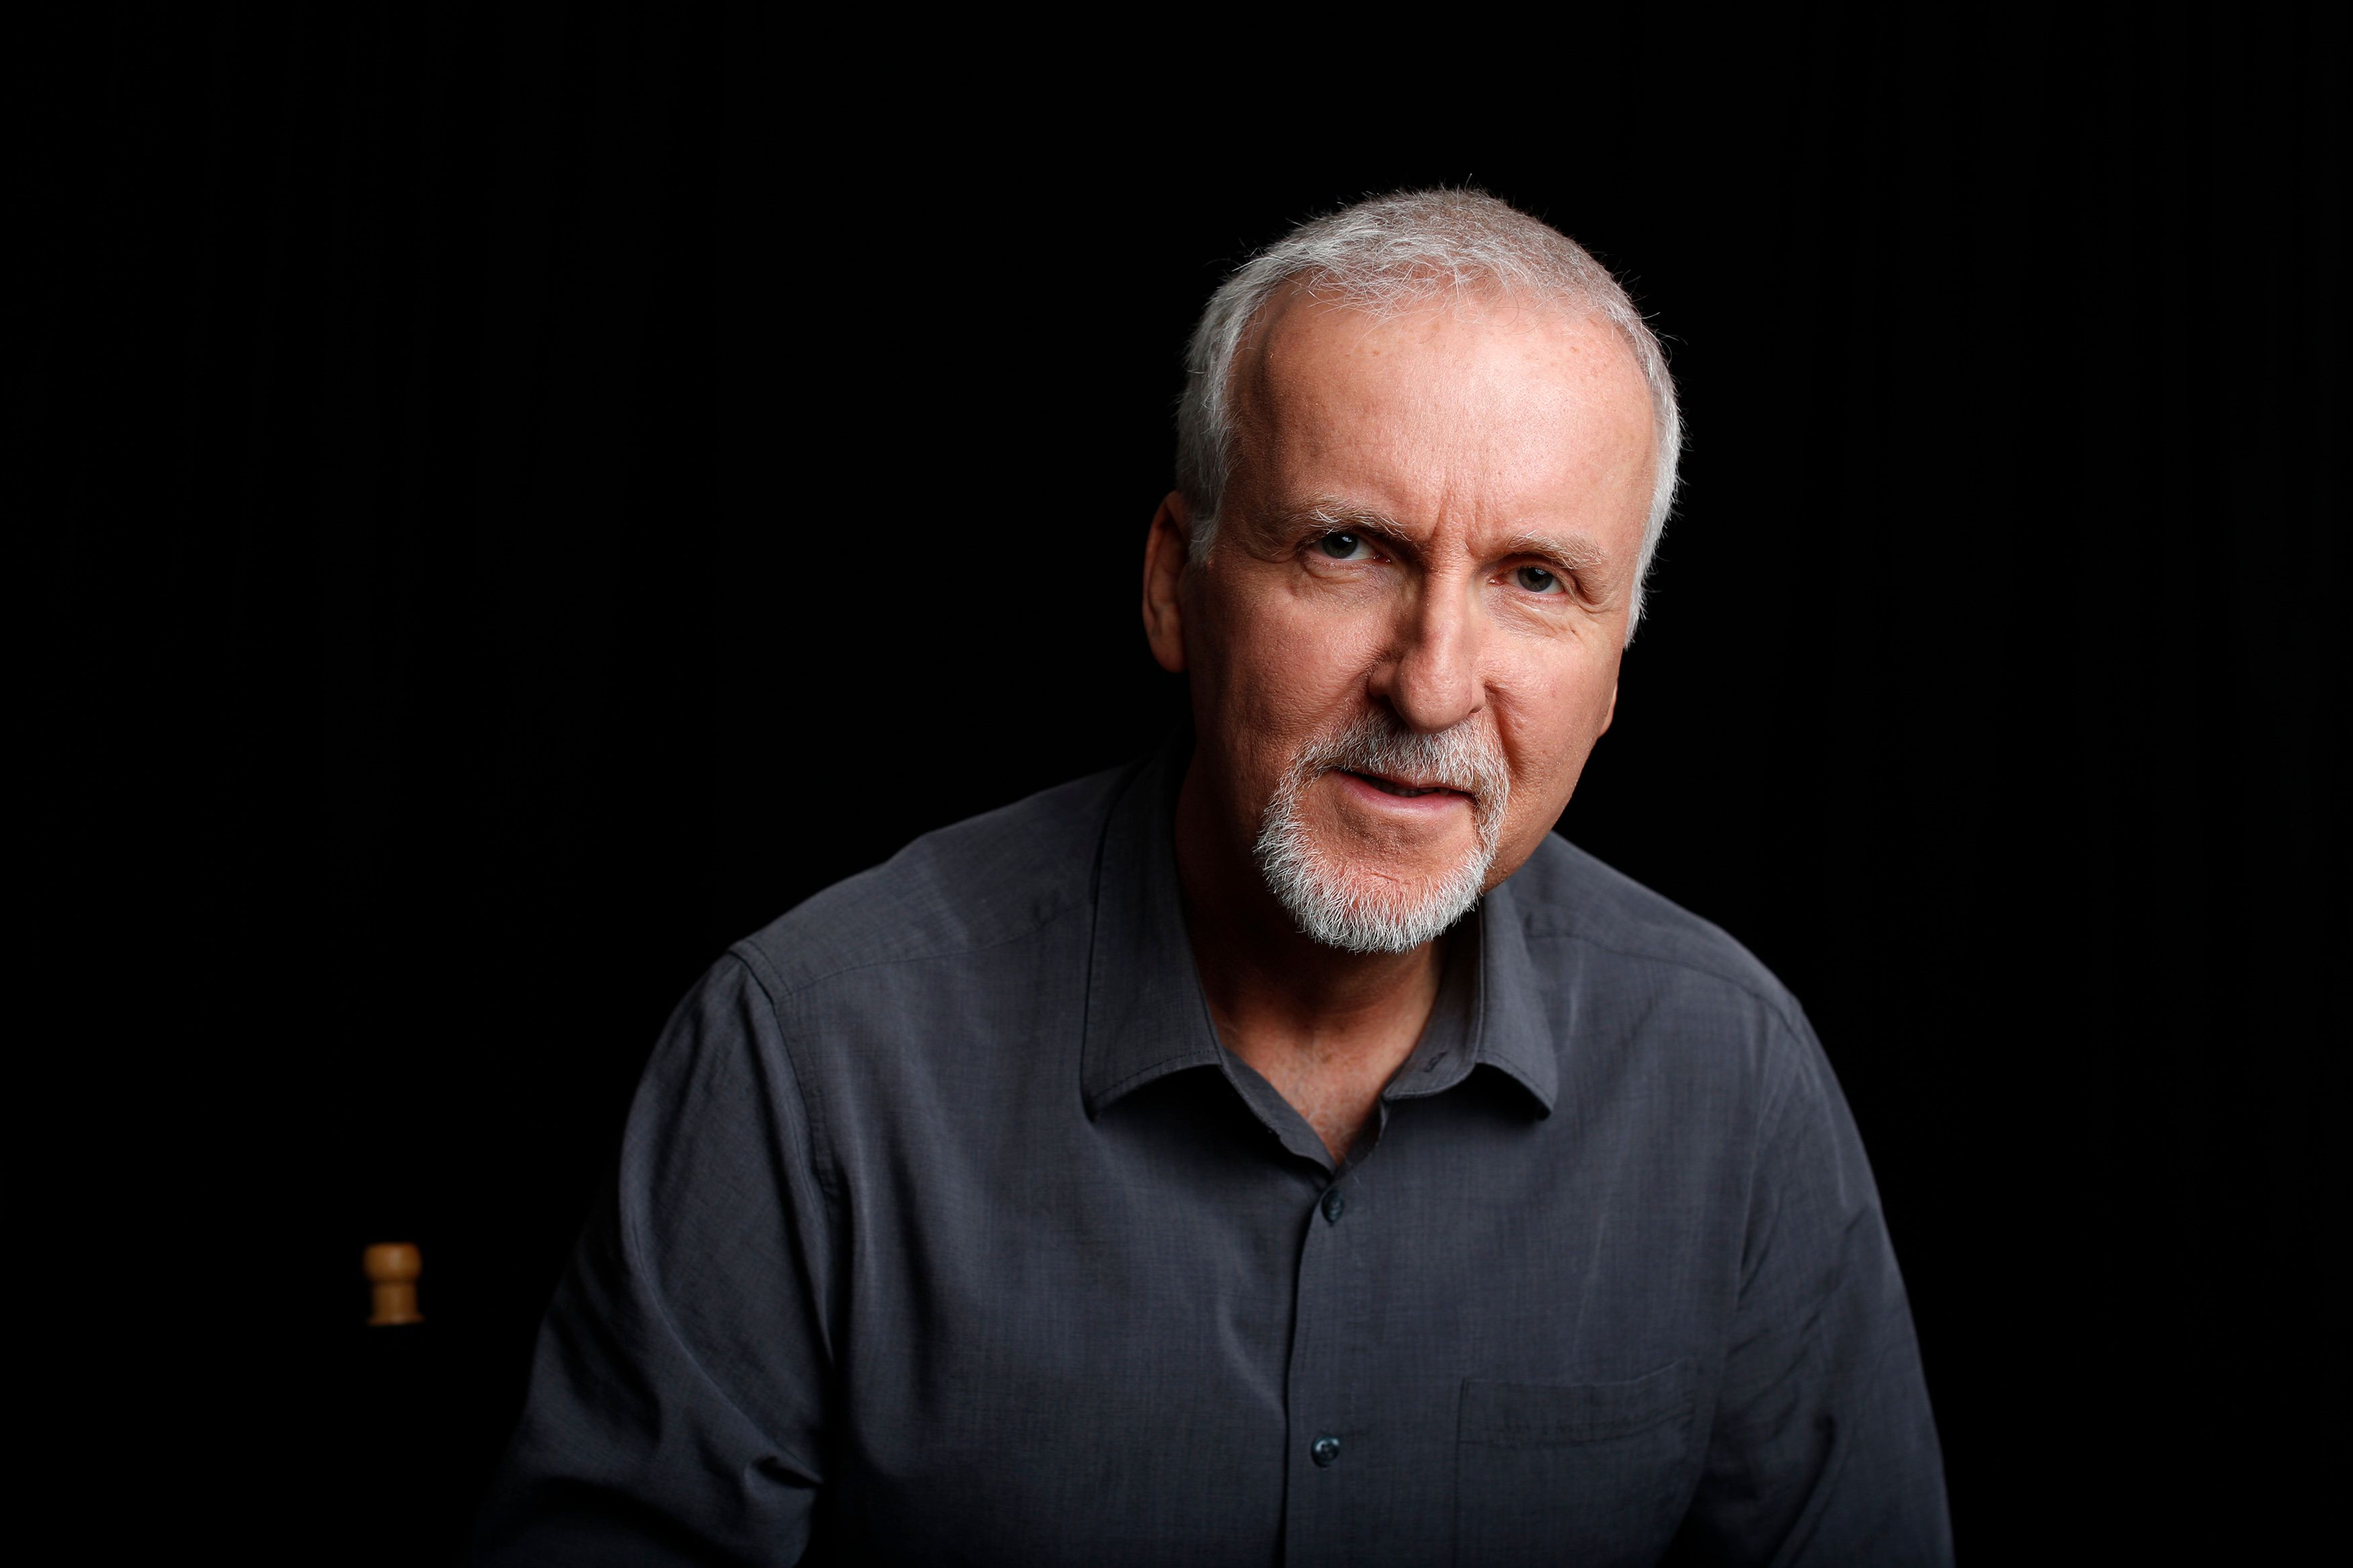 "Director James Cameron poses for a portrait in Manhattan Beach, California April 8, 2014. Cameron, best known as director of blockbuster films ""Titanic"" and ""Avatar"", has appealed to well-known Hollywood actors to act as correspondents for new Showtime documentary ""Years of Living Dangerously"", which chronicles the human impact on the global climate and the consequences for humans of climate change. Picture taken April 8, 2014. To match story TELEVISION-CLIMATECHANGE/      REUTERS/Lucy Nicholson (UNITED STATES - Tags: ENTERTAINMENT ENVIRONMENT PROFILE PORTRAIT)"